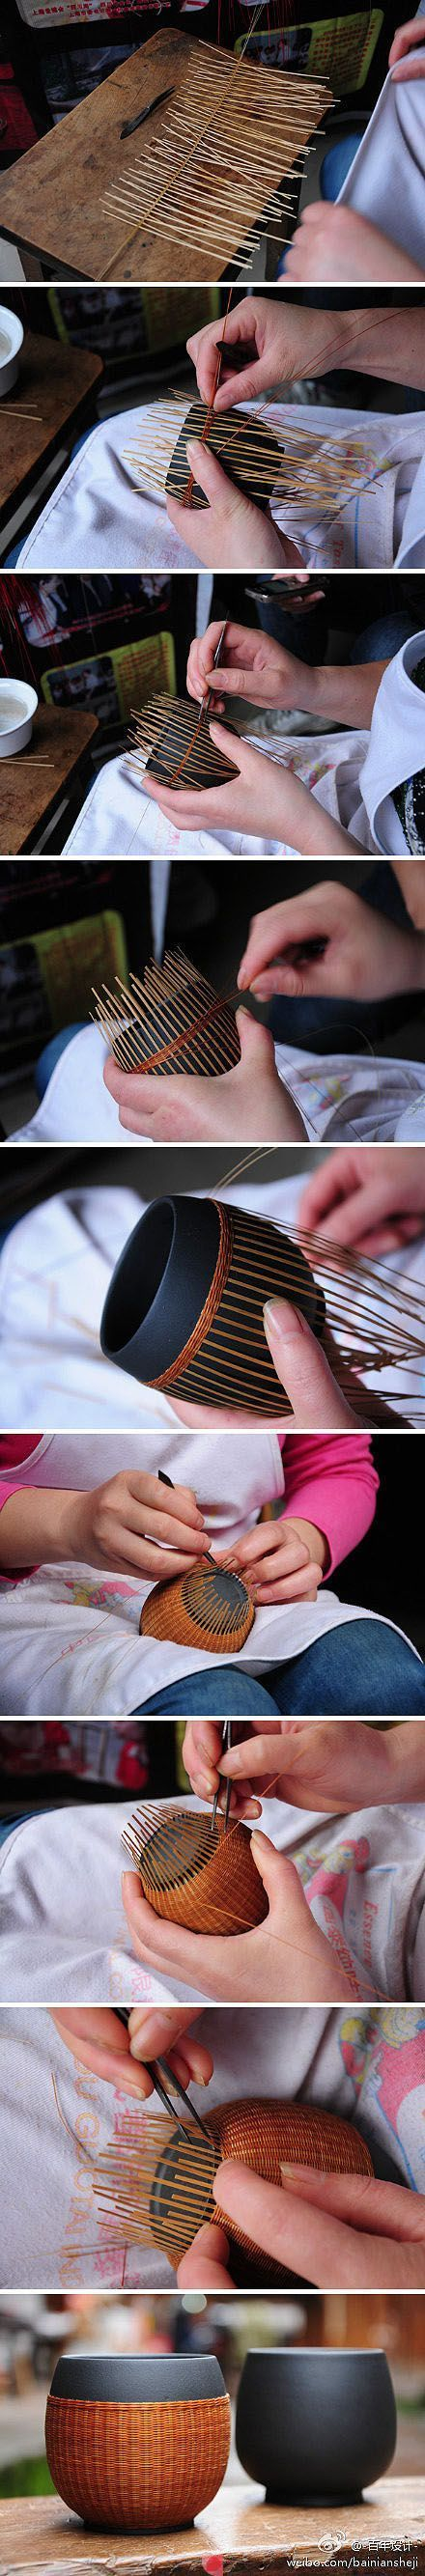 Making a basket...no source... (440×2668)